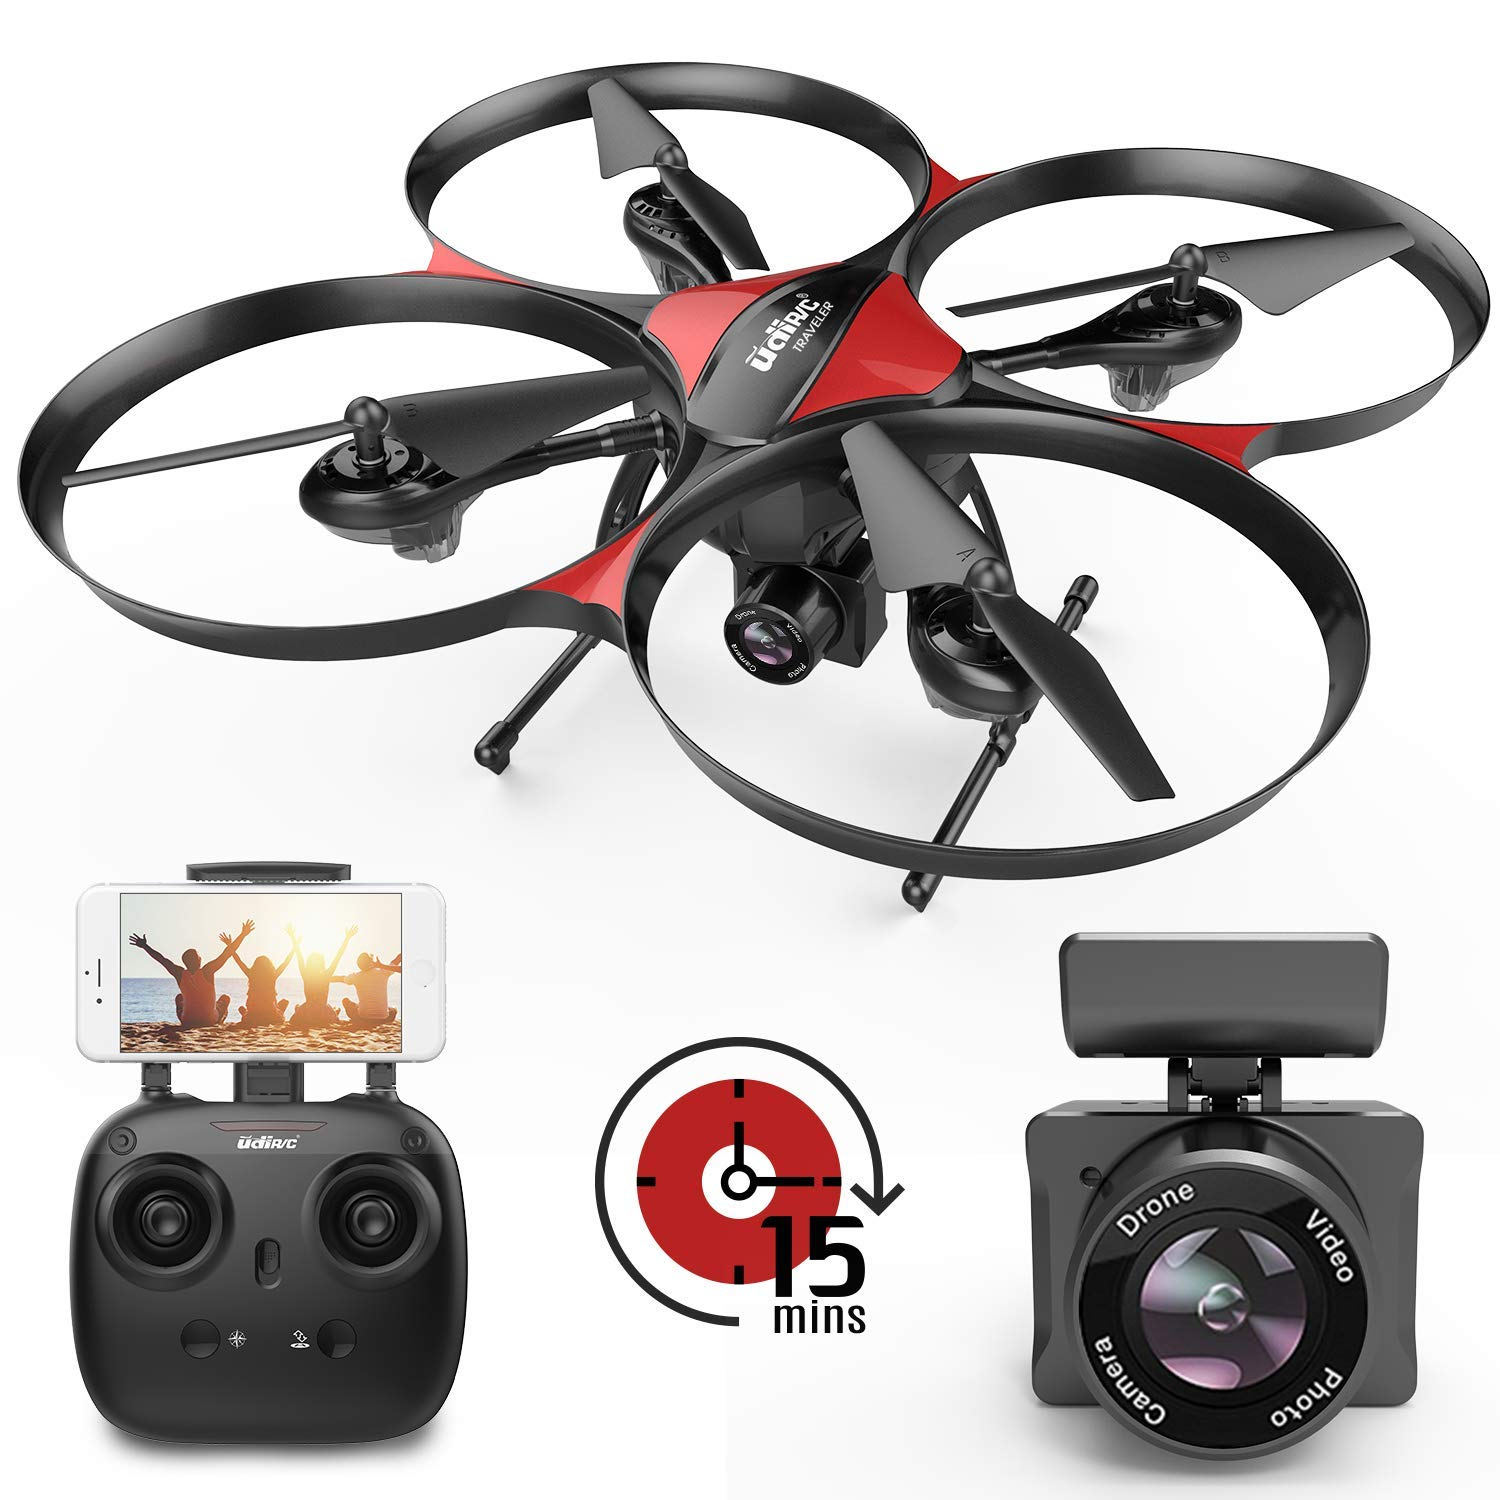 DROCON Drone with Camera and 720P 120°FOV FPV Real-time Video, Quadcopter Designed for Beginners with a 15-min Flight Time, Altitude Hold, Headless Mode, 4GB TF Card Included by DROCON